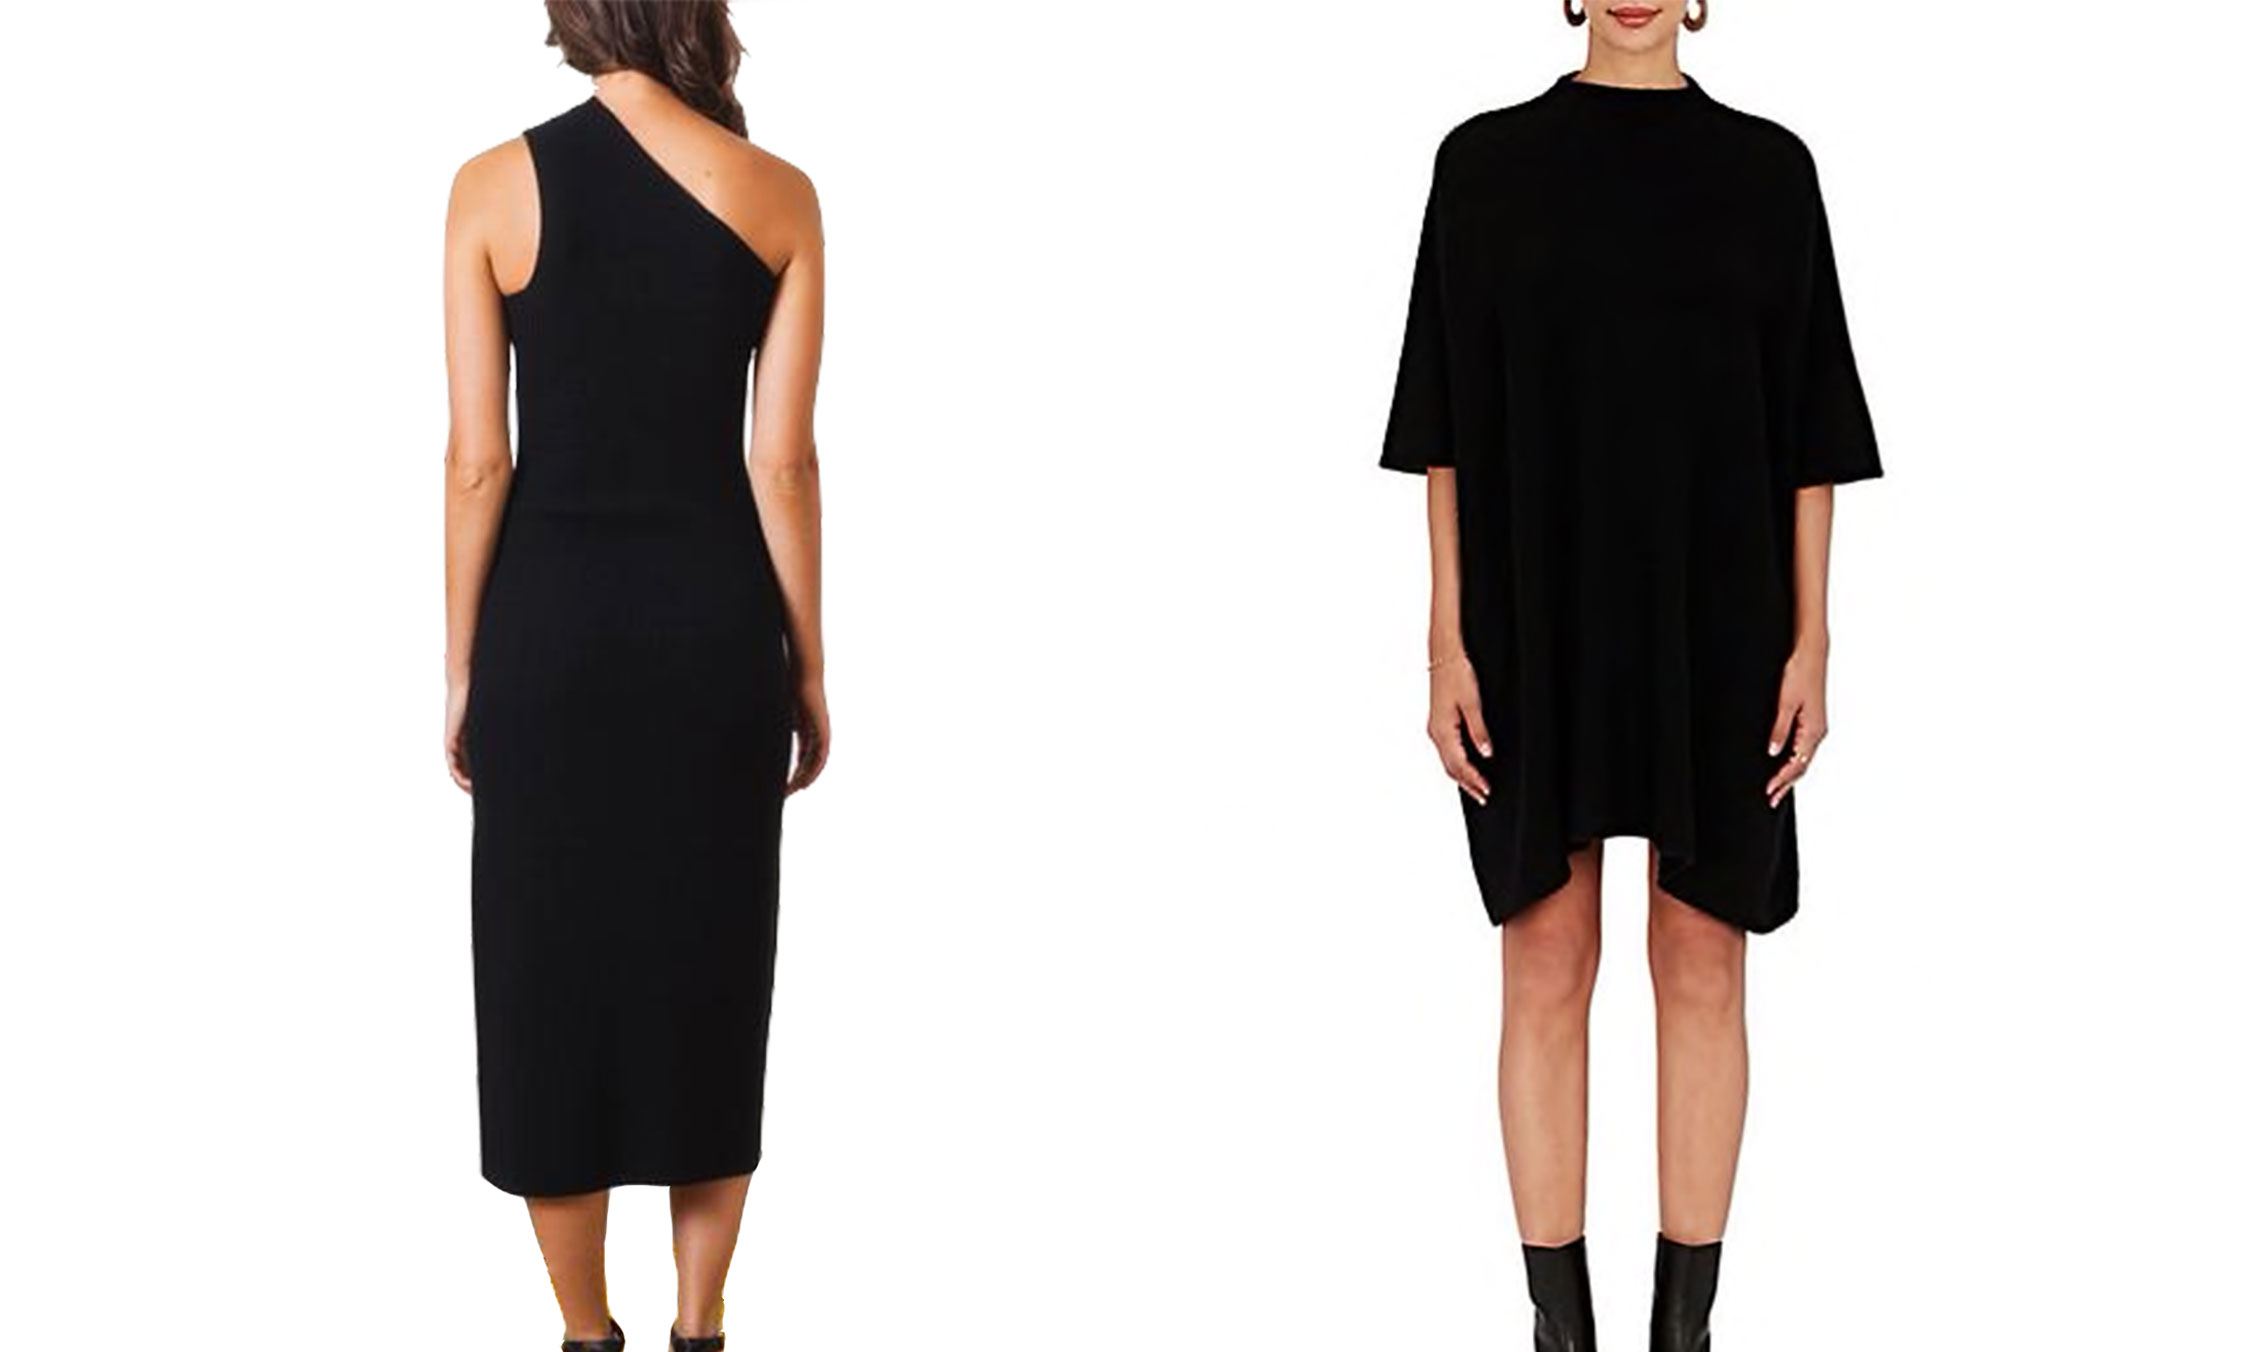 Shaina Mote Onyx Sling Dress and The Elder Statesman Guatemala Cashmere Sweaterdress